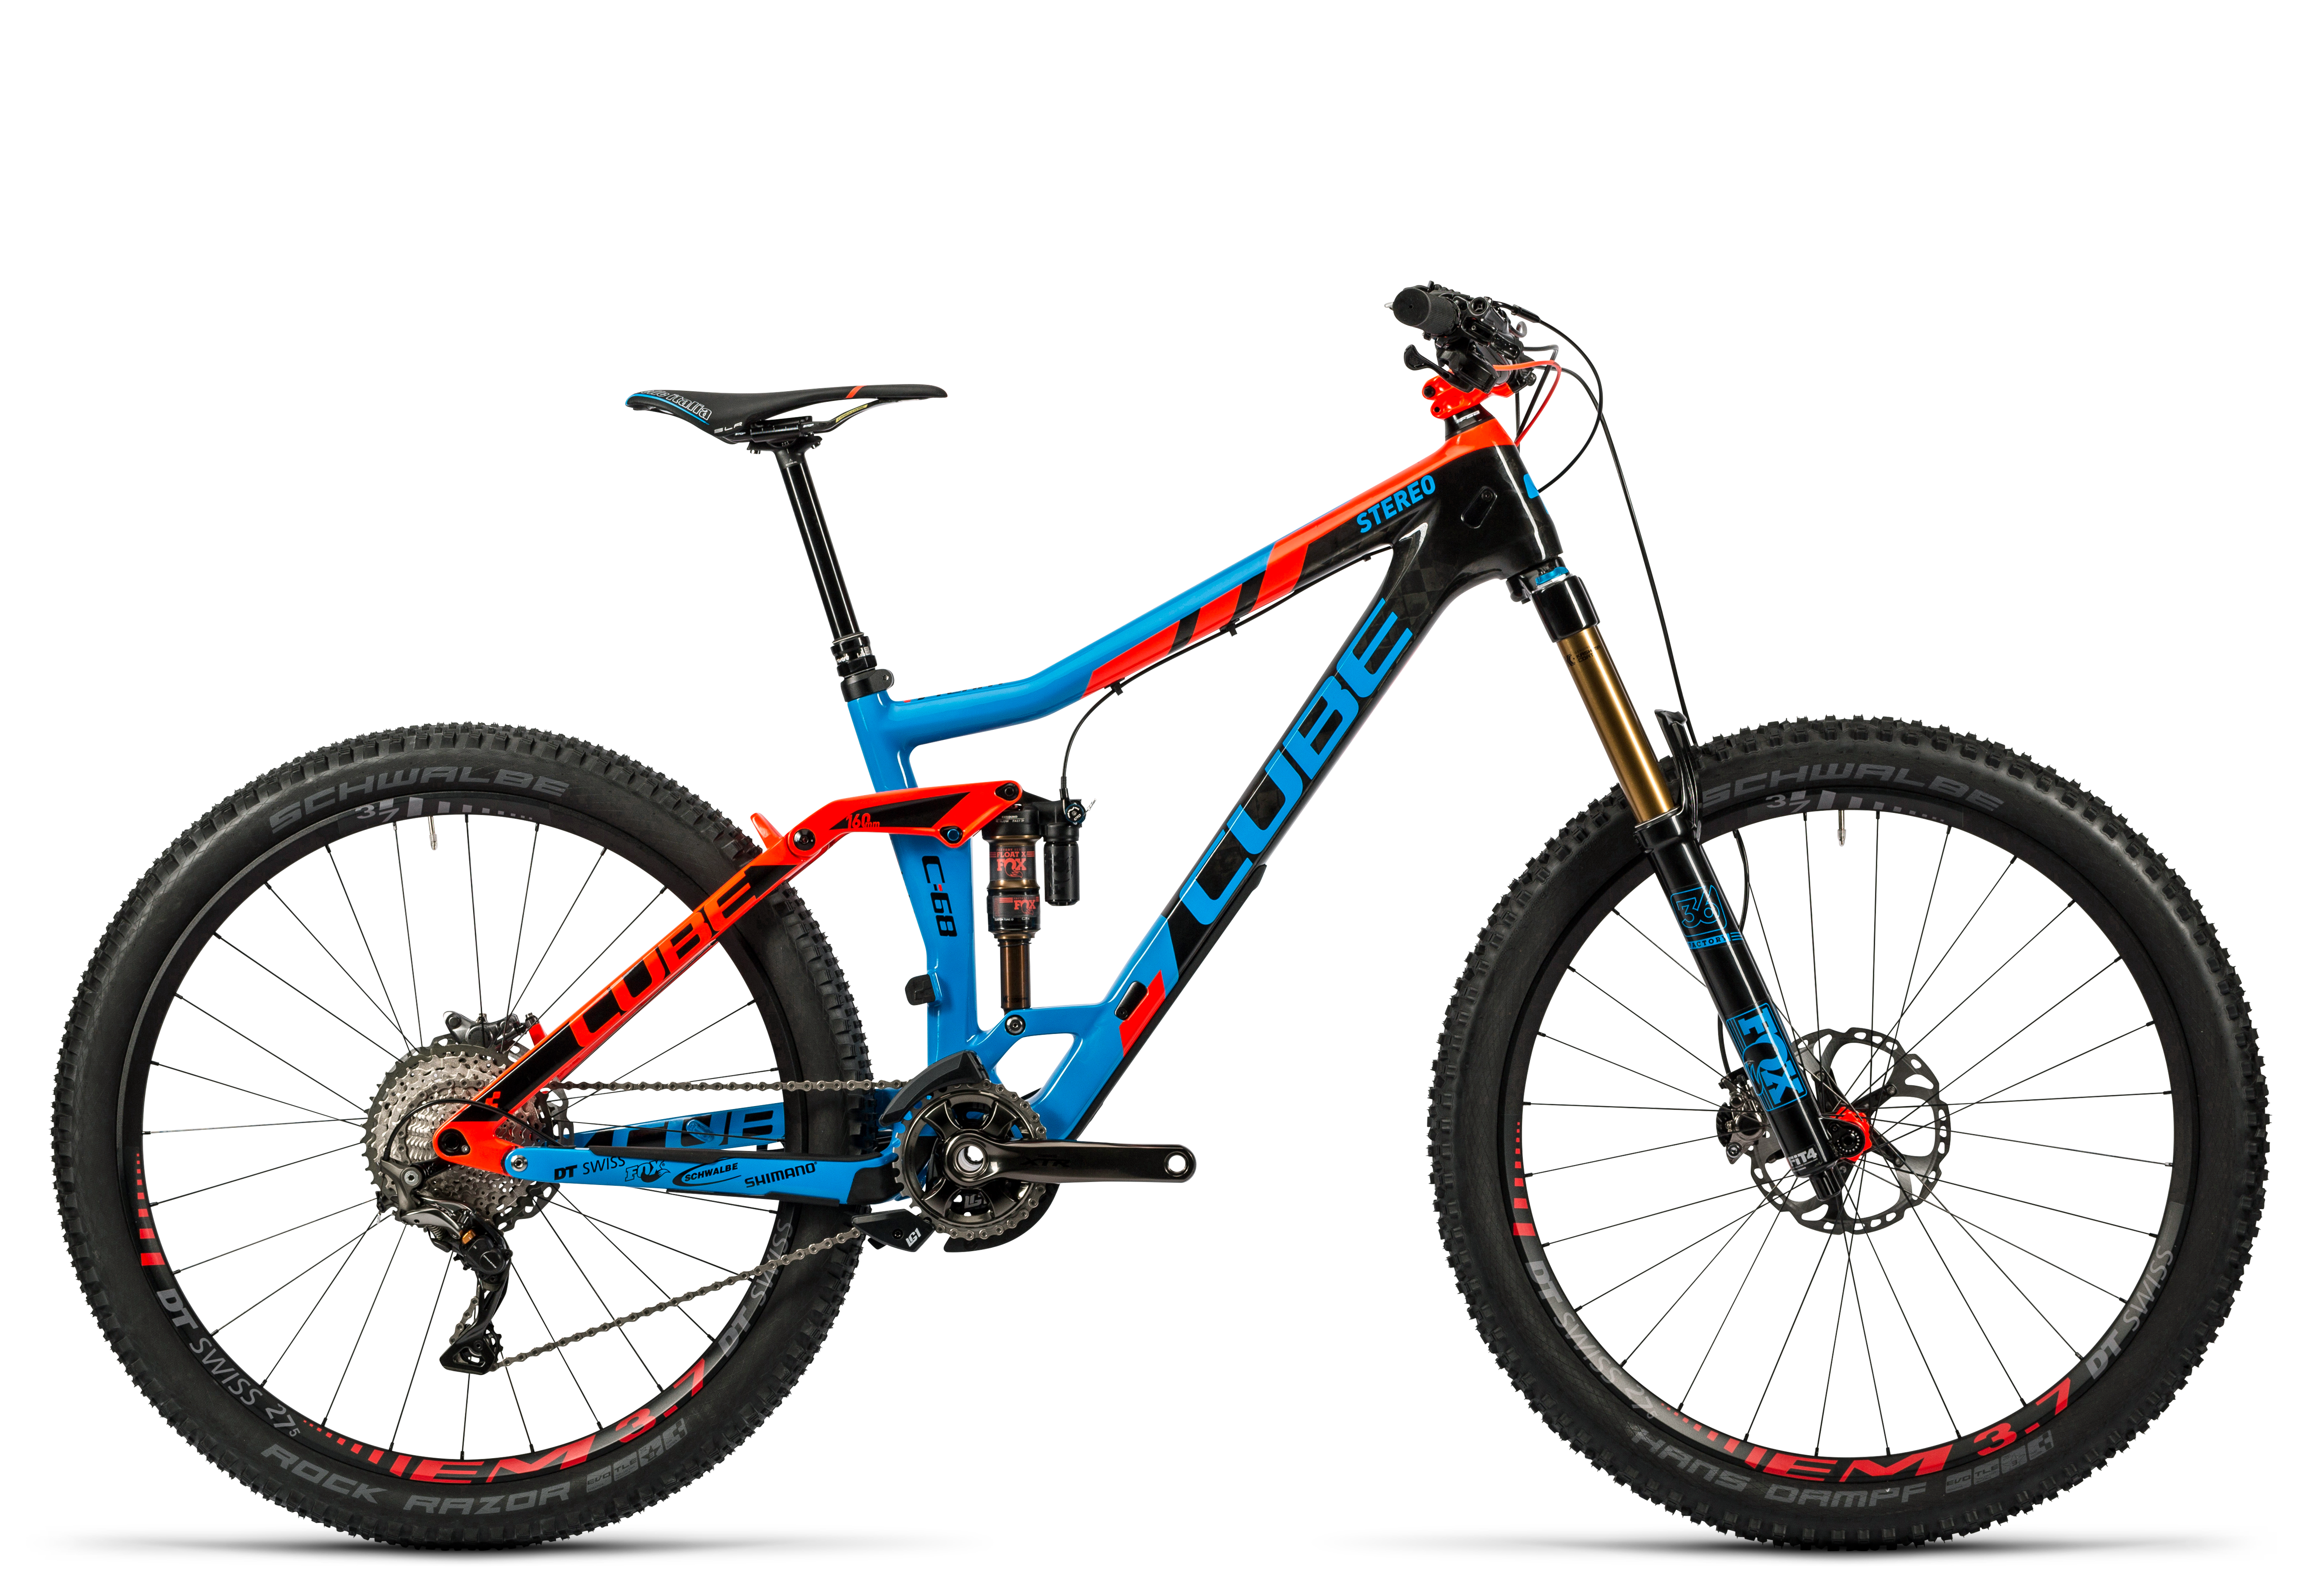 ddf9ef29ed7 2016 CUBE STEREO 160 C:68 TEAM FULL SUSPENSION MOUNTAIN BIKE £4,599.00